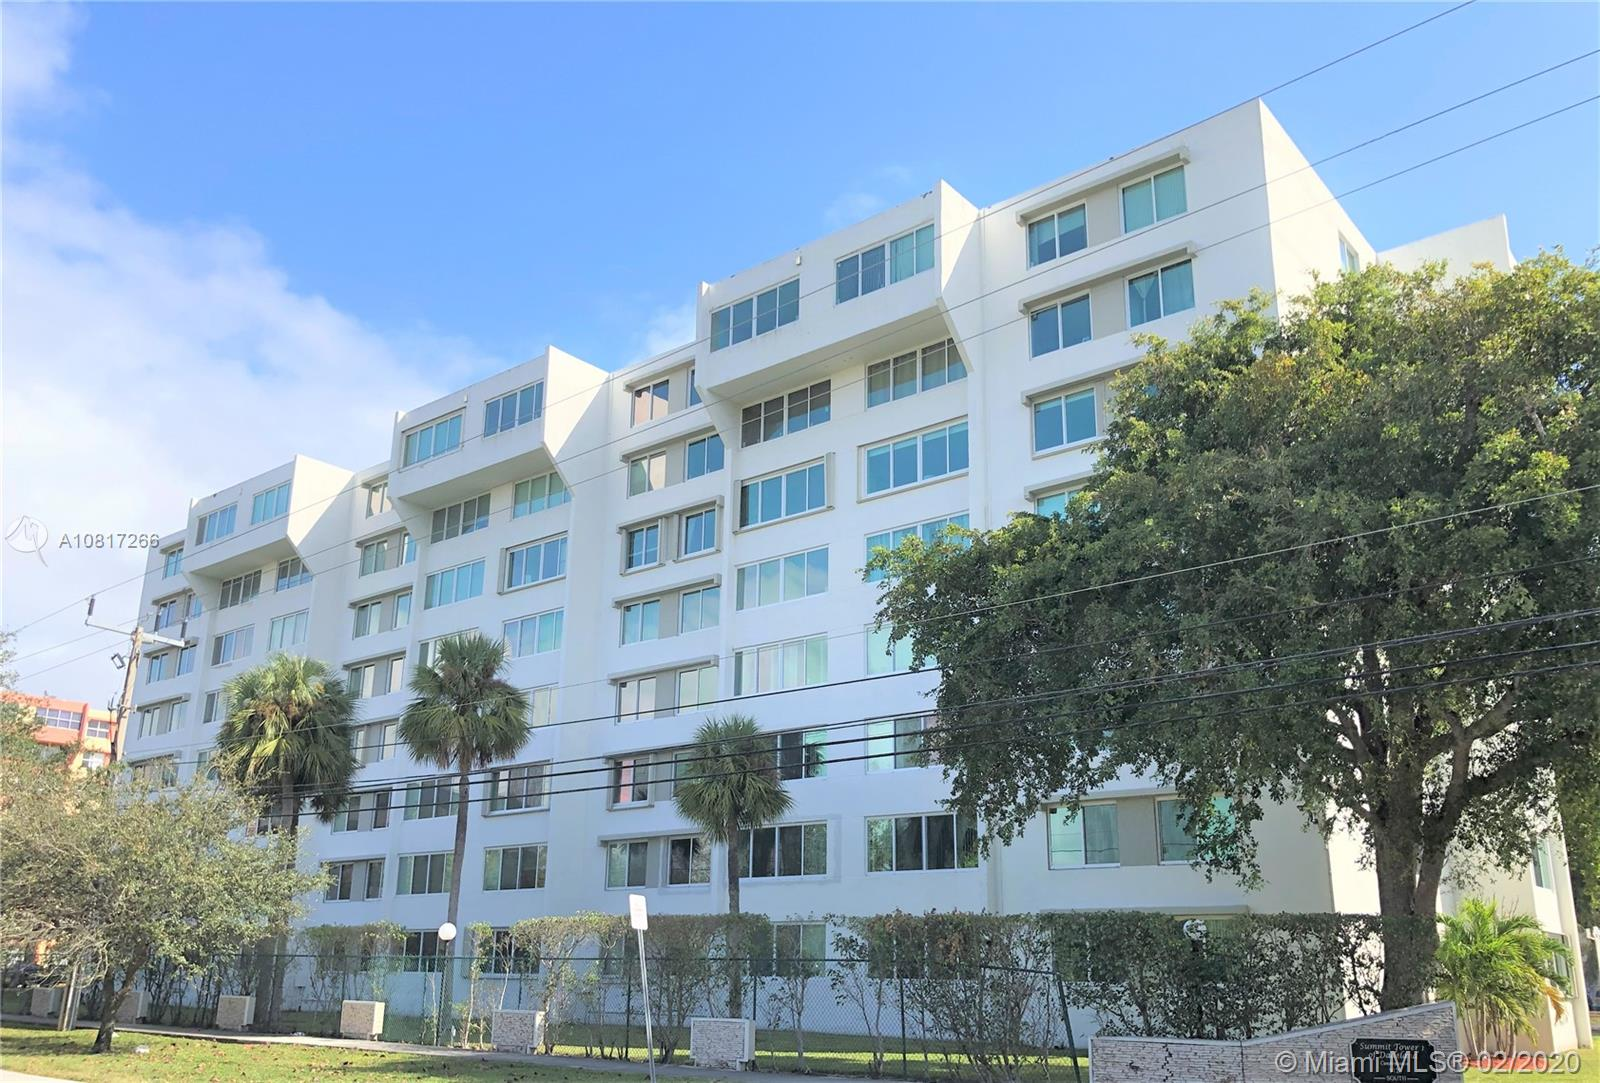 9125 SW 77th Ave #504 For Sale A10817266, FL